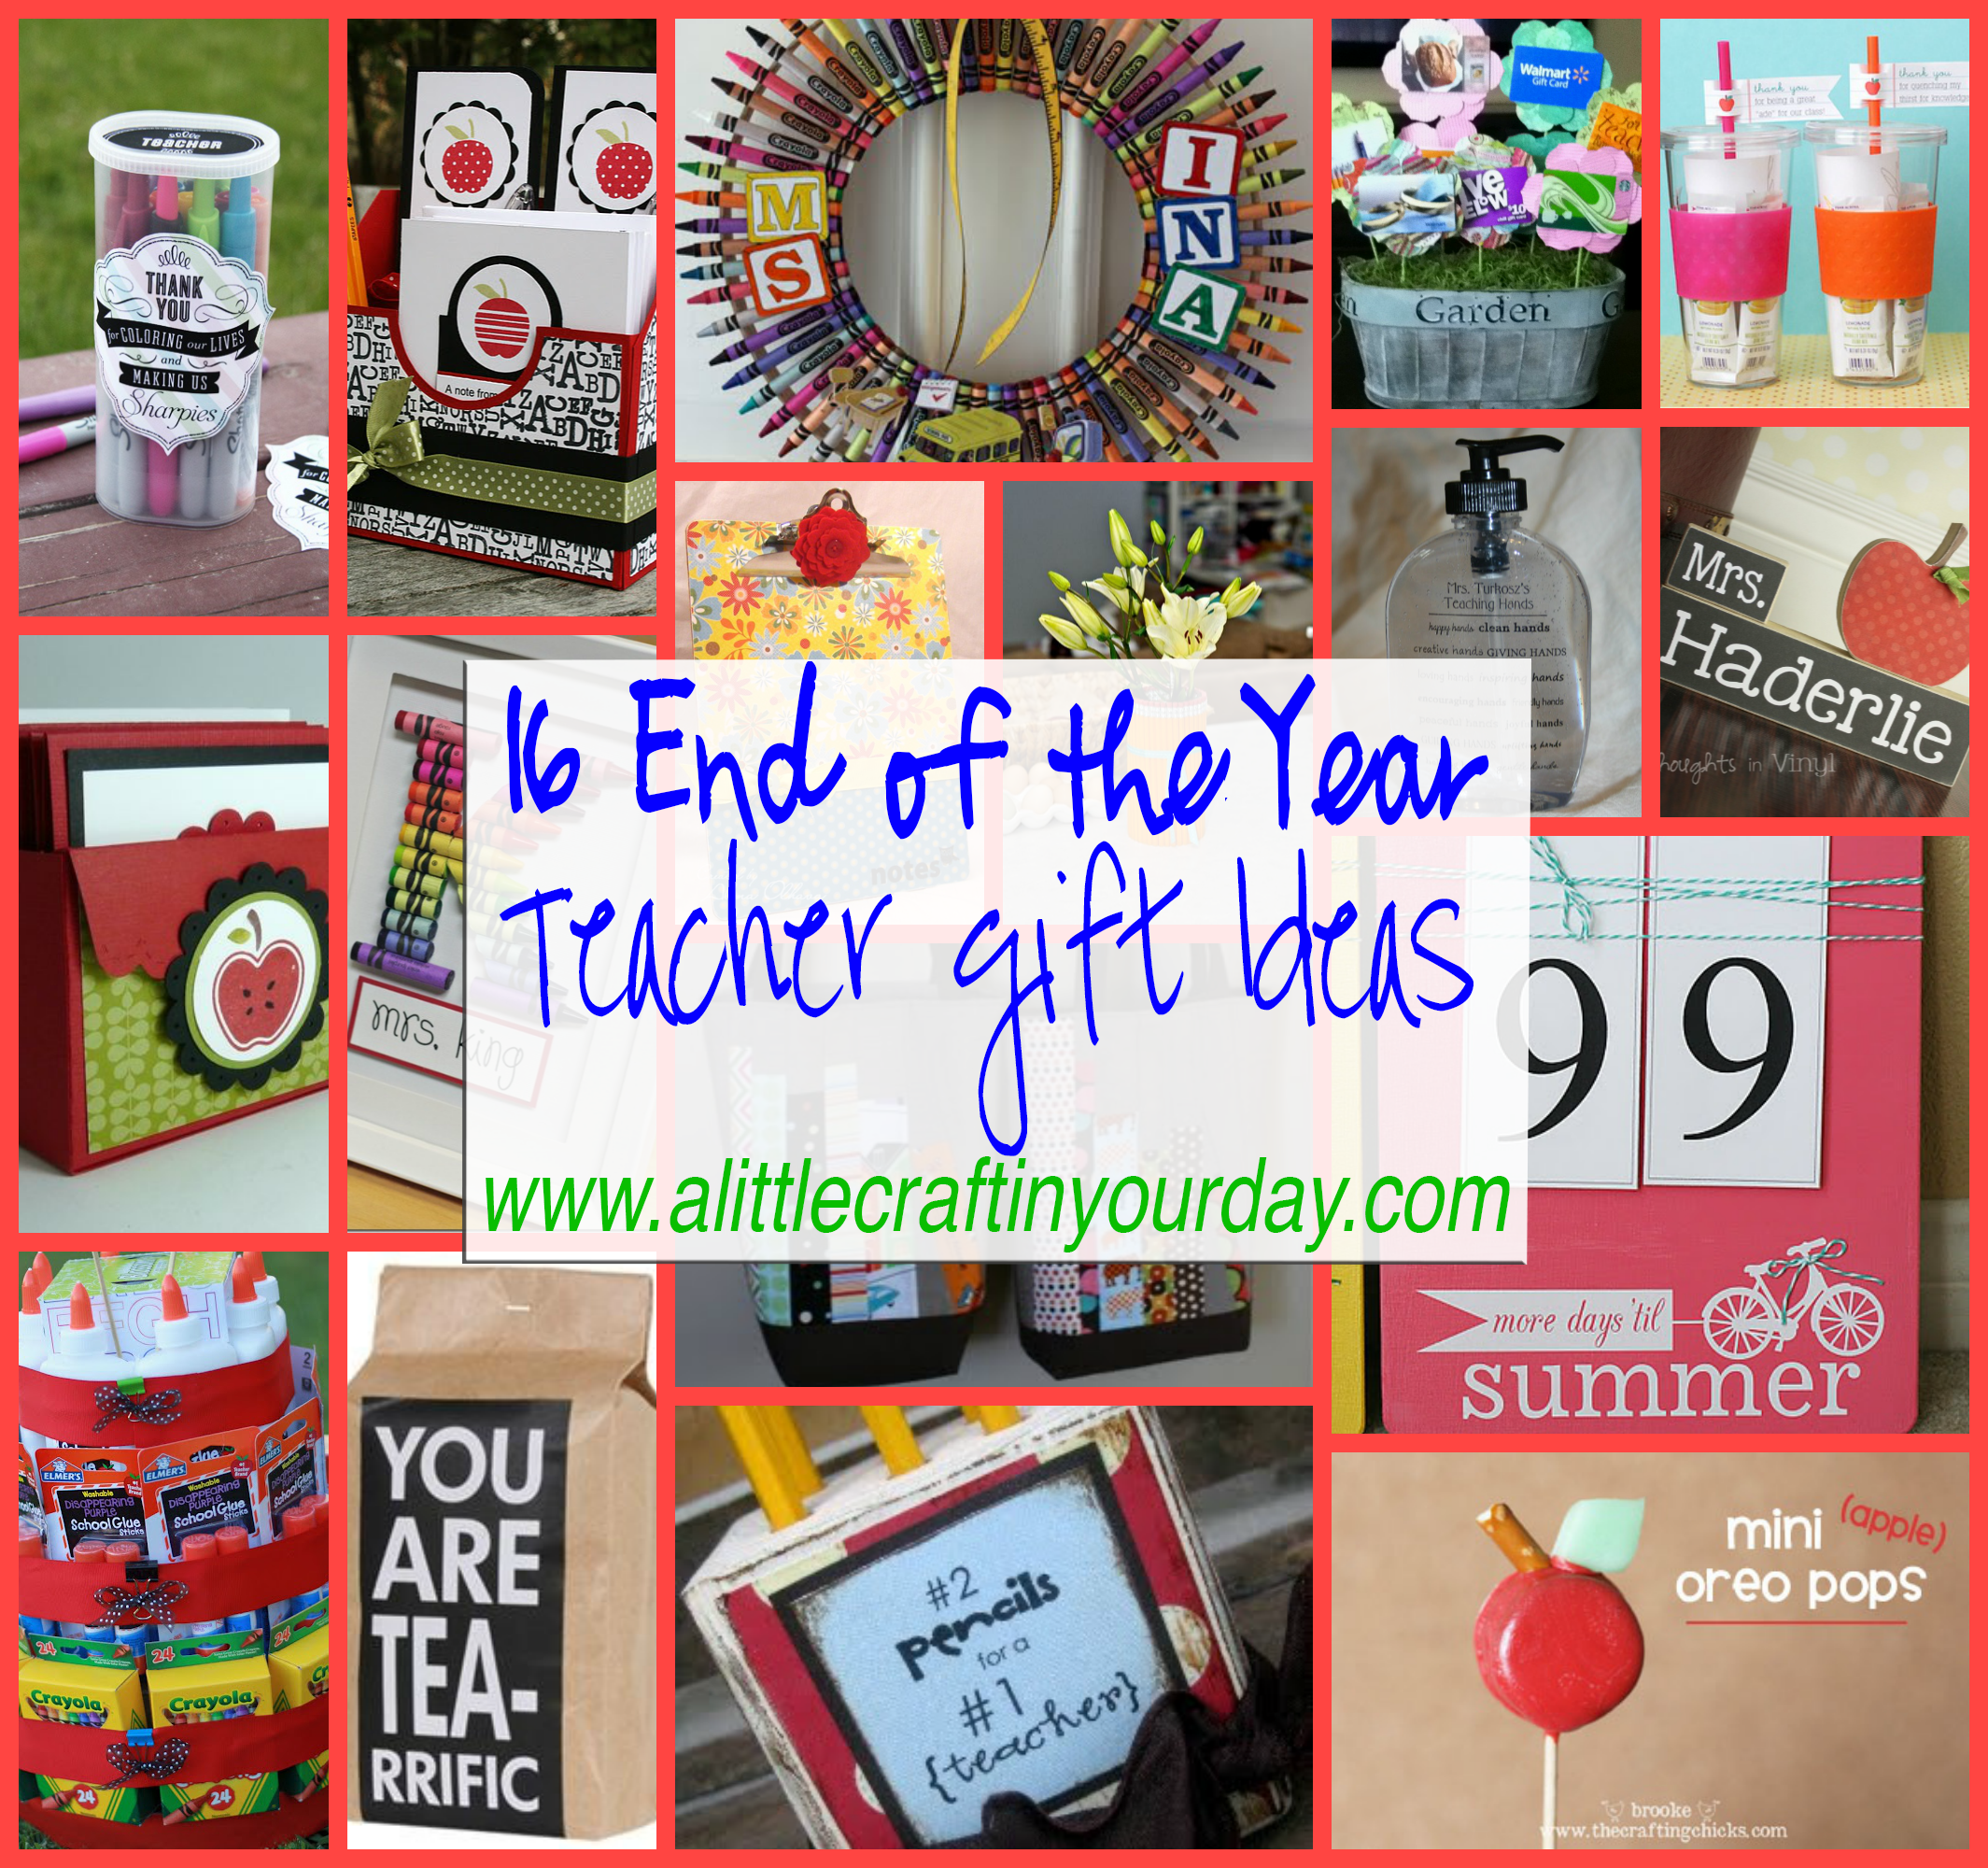 math worksheet : 16 end of the year teacher gift ideas  a little craft in your  : Homemade Christmas Gifts For School Teachers